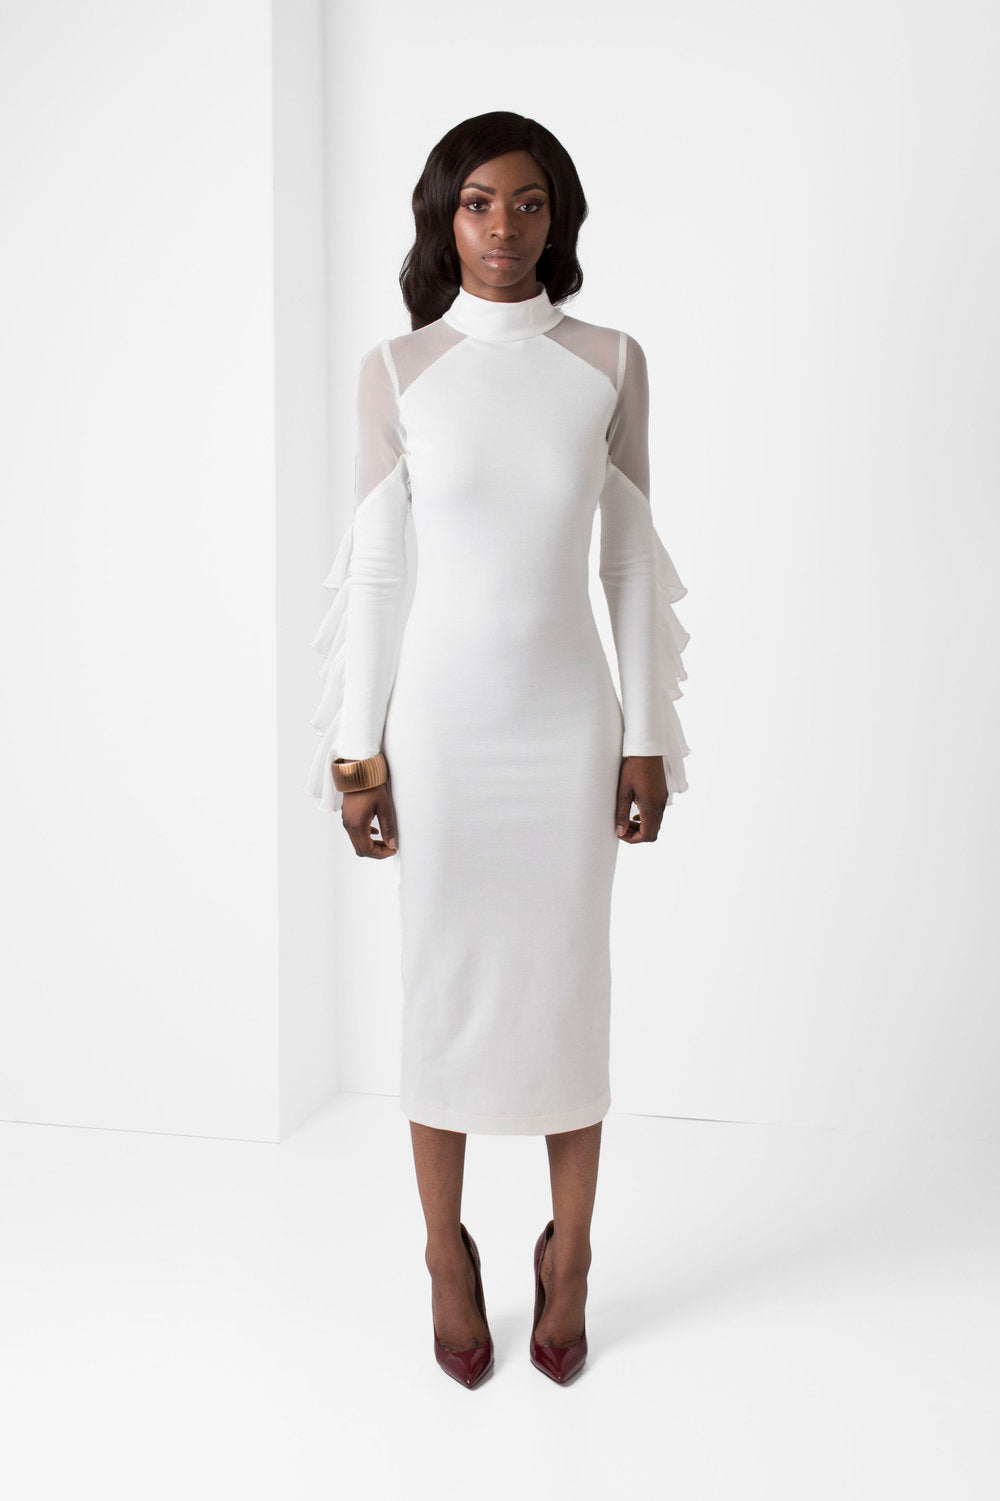 Off-White Long Sleeve BodyCon Pencil Dress w/ Mesh Shoulders - pacorogiene